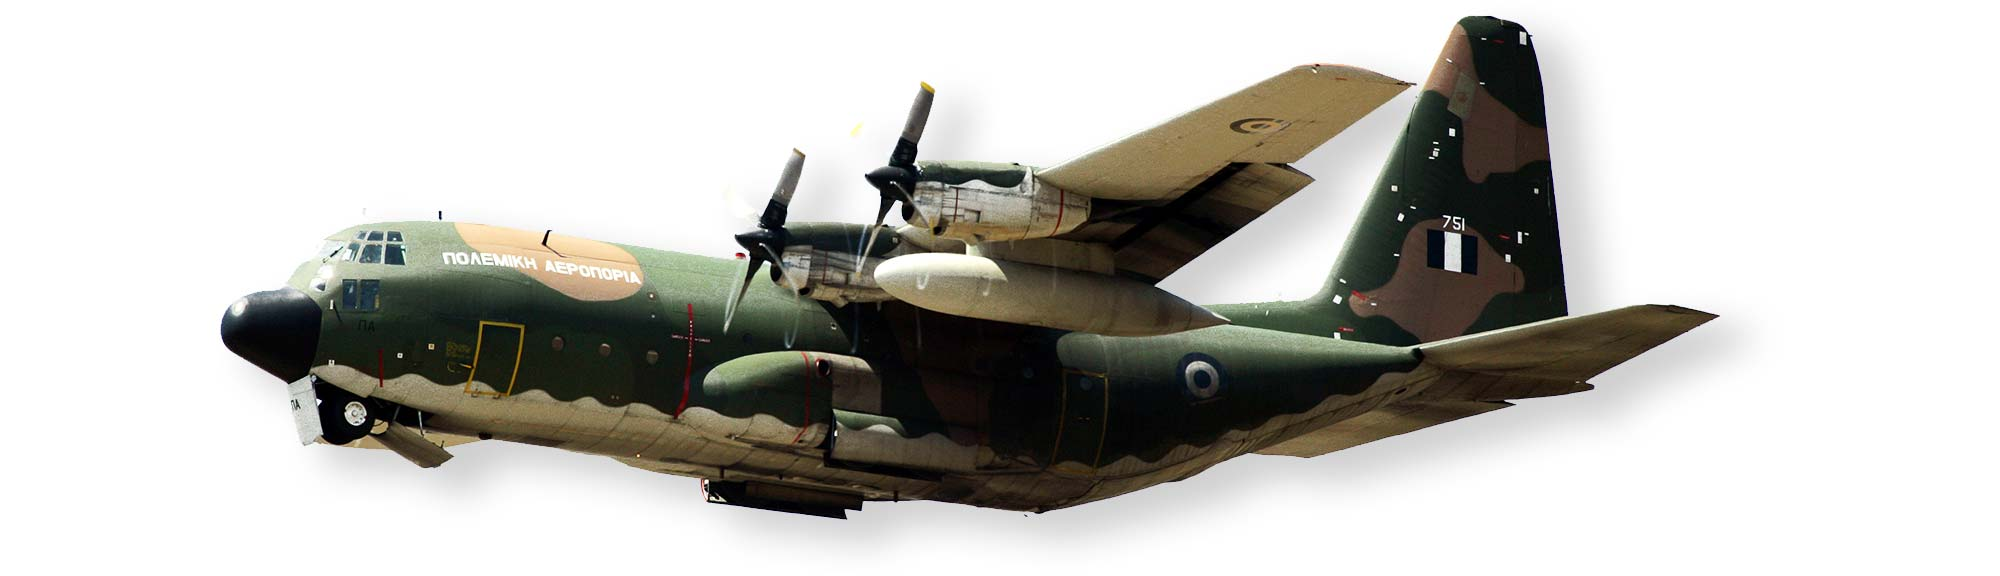 hight resolution of the t56 is a single shaft modular design turboprop engine the gearbox has two stages of gear reduction features a propeller brake and is connected to